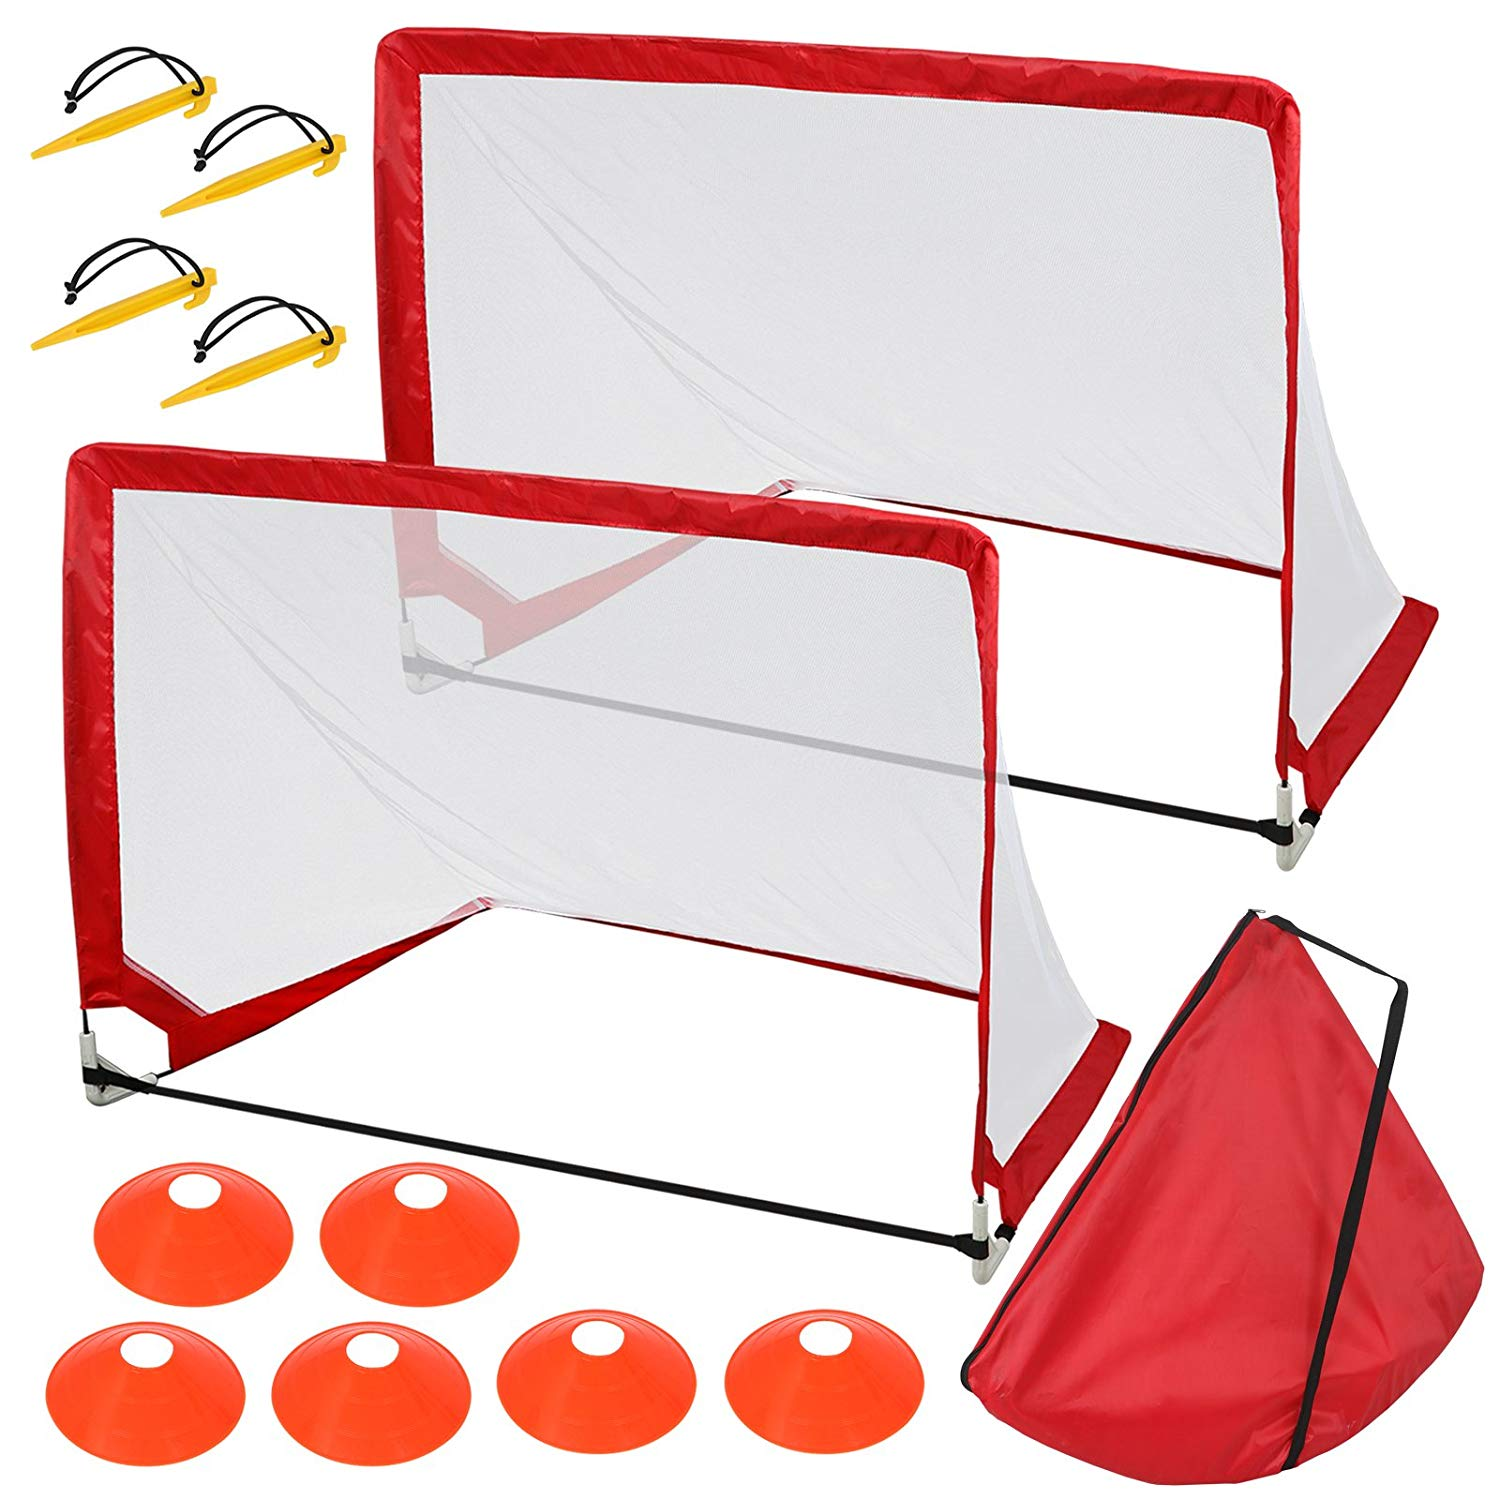 50485c119 F2C Set of 2-4' Square Portable Kids Toddlers Pro Pop-Up Soccer Football  Goal Target Nets Set W/6 Cones & Carry Bag, Futsal Outdoor Pop Up Pick Up  Game ...